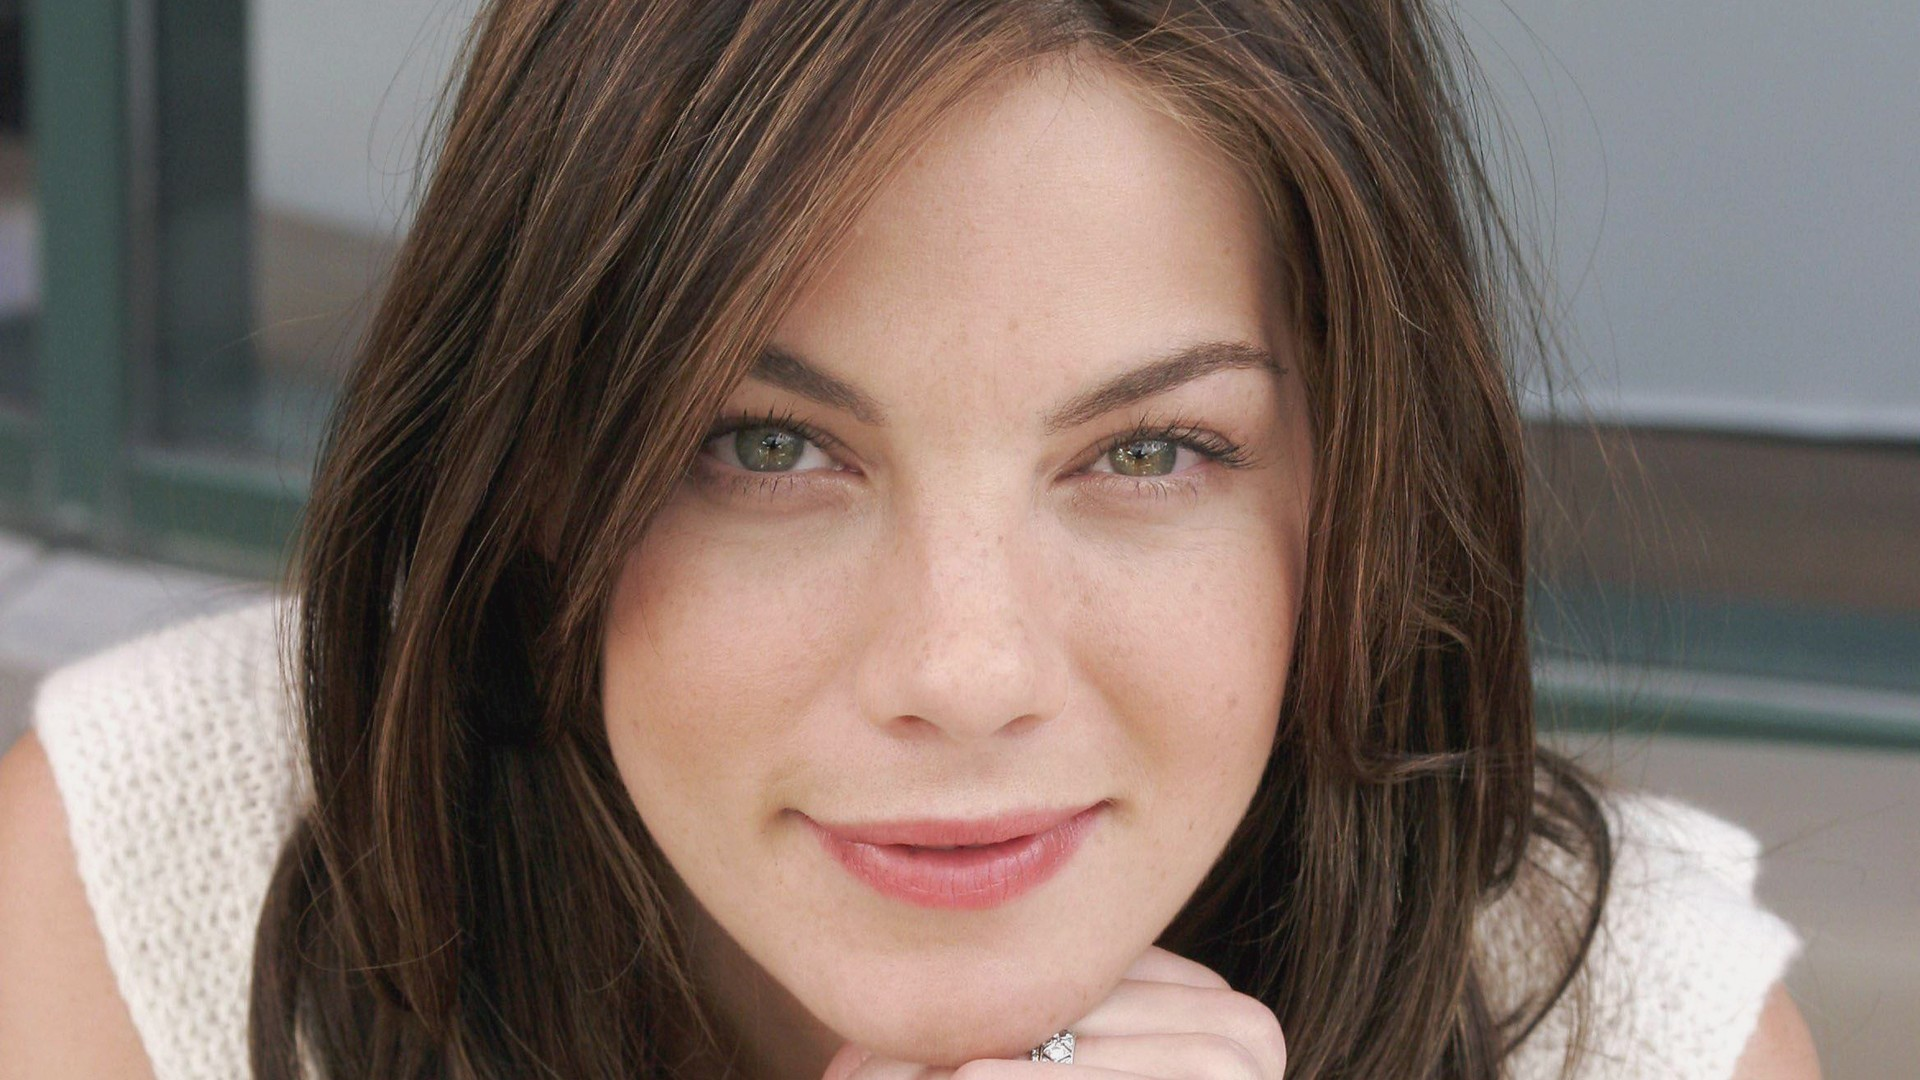 Res: 1920x1080, Michelle Monaghan Face Wallpaper 53583